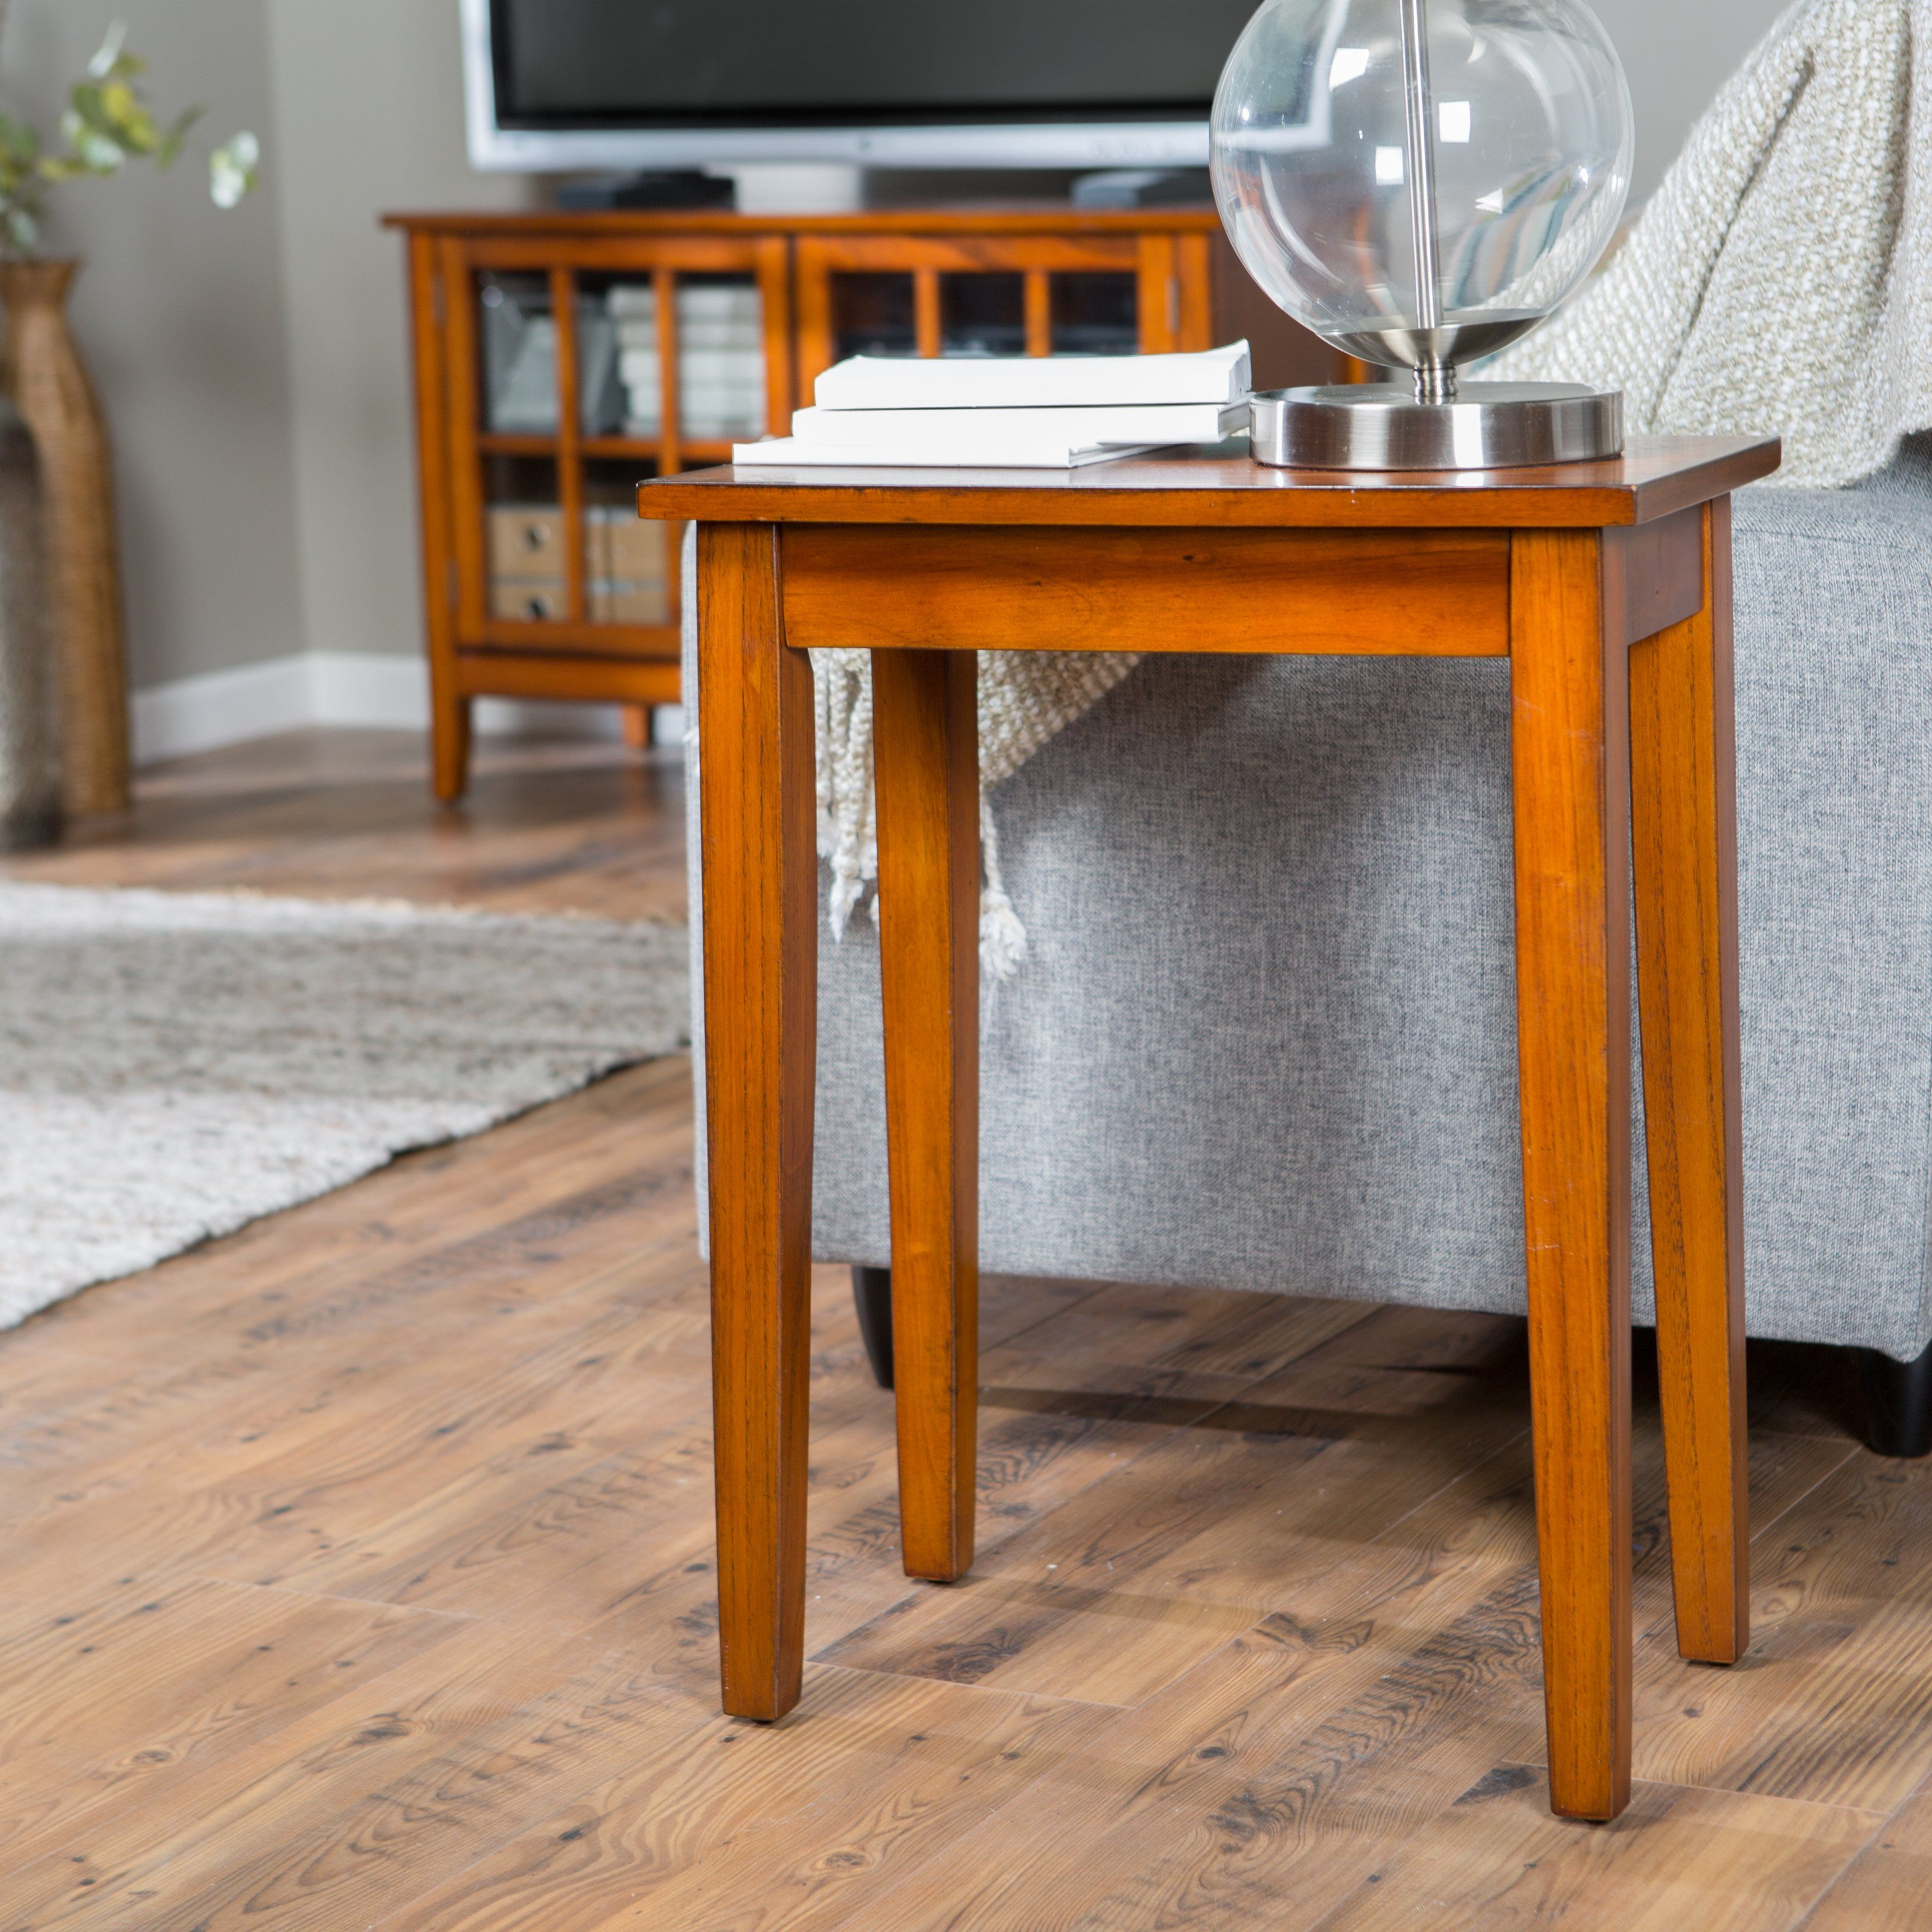 Have to have it. Turner Chair Side Table - Oak - $49.98 @hayneedle ...